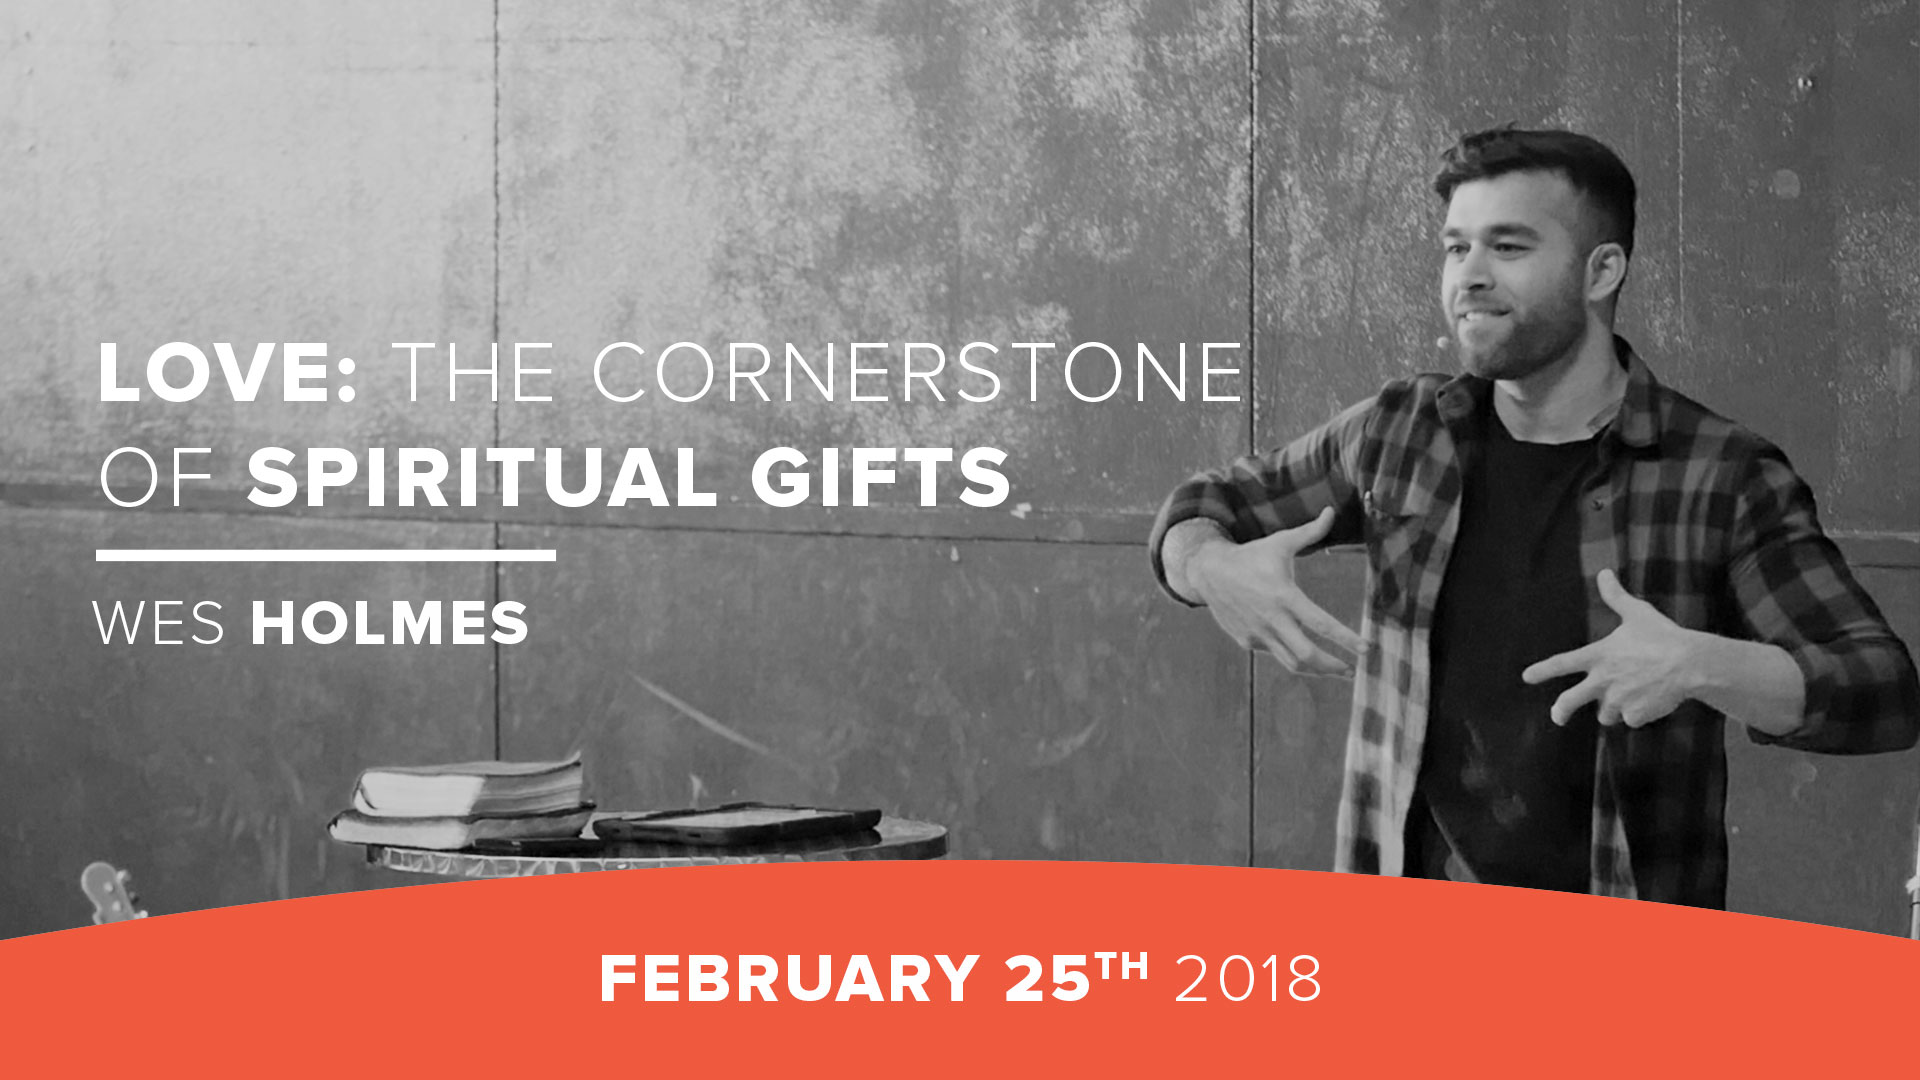 Love: The Cornerstone of the Spiritual Gifts